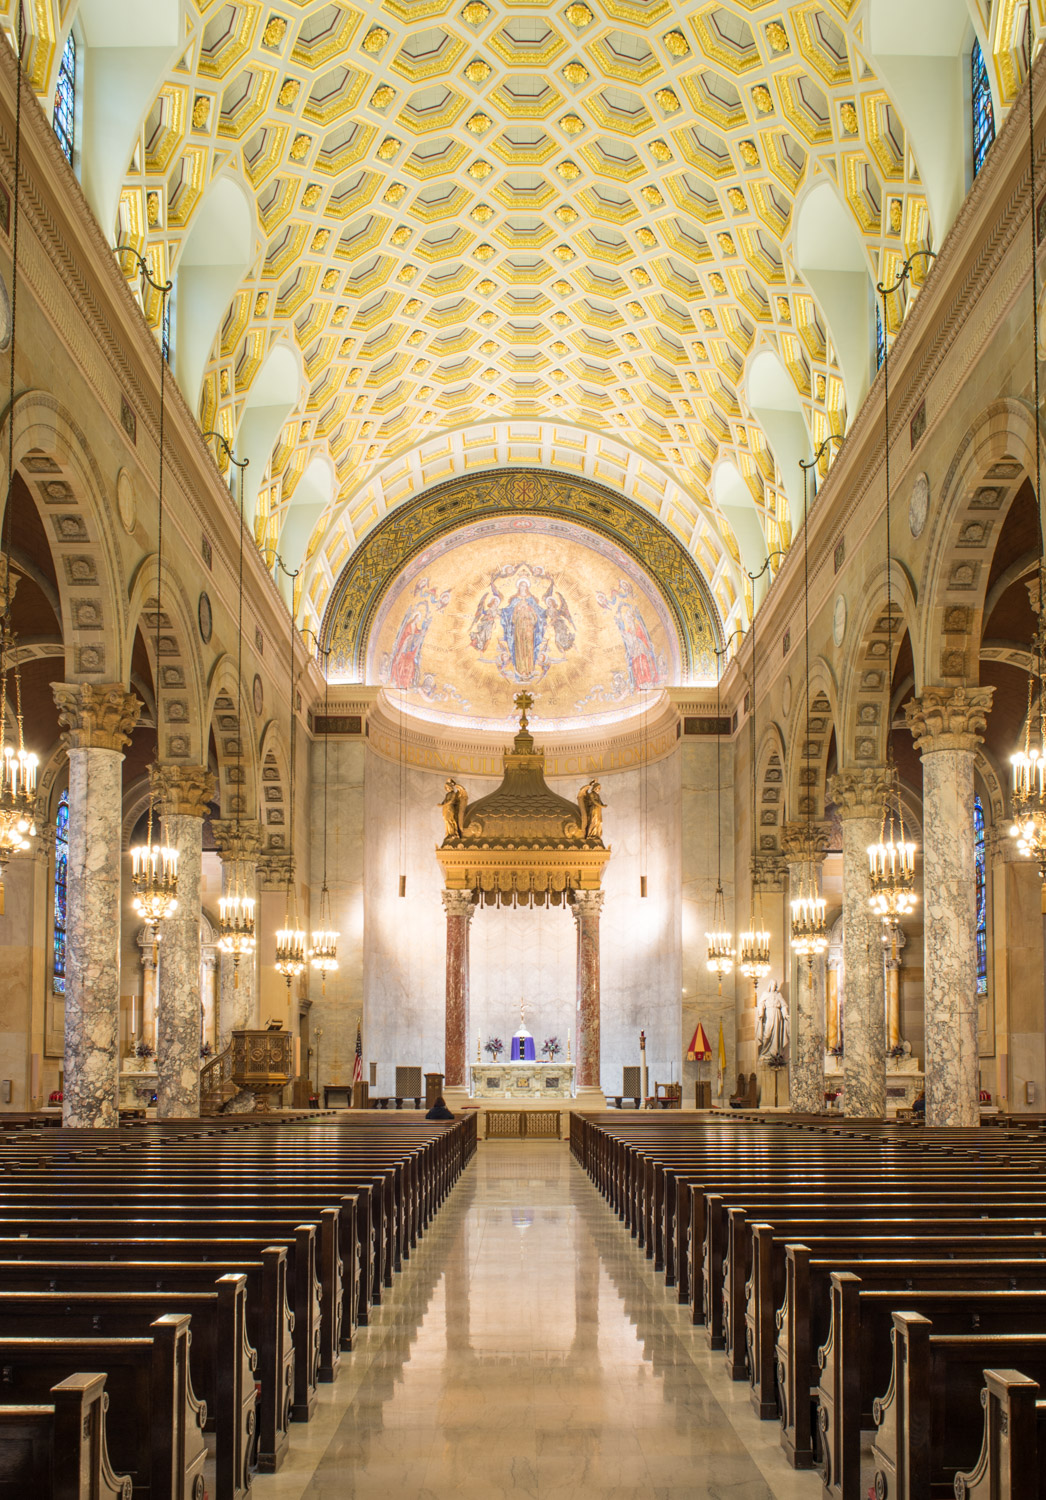 The Basilica of the Immaculate Conception